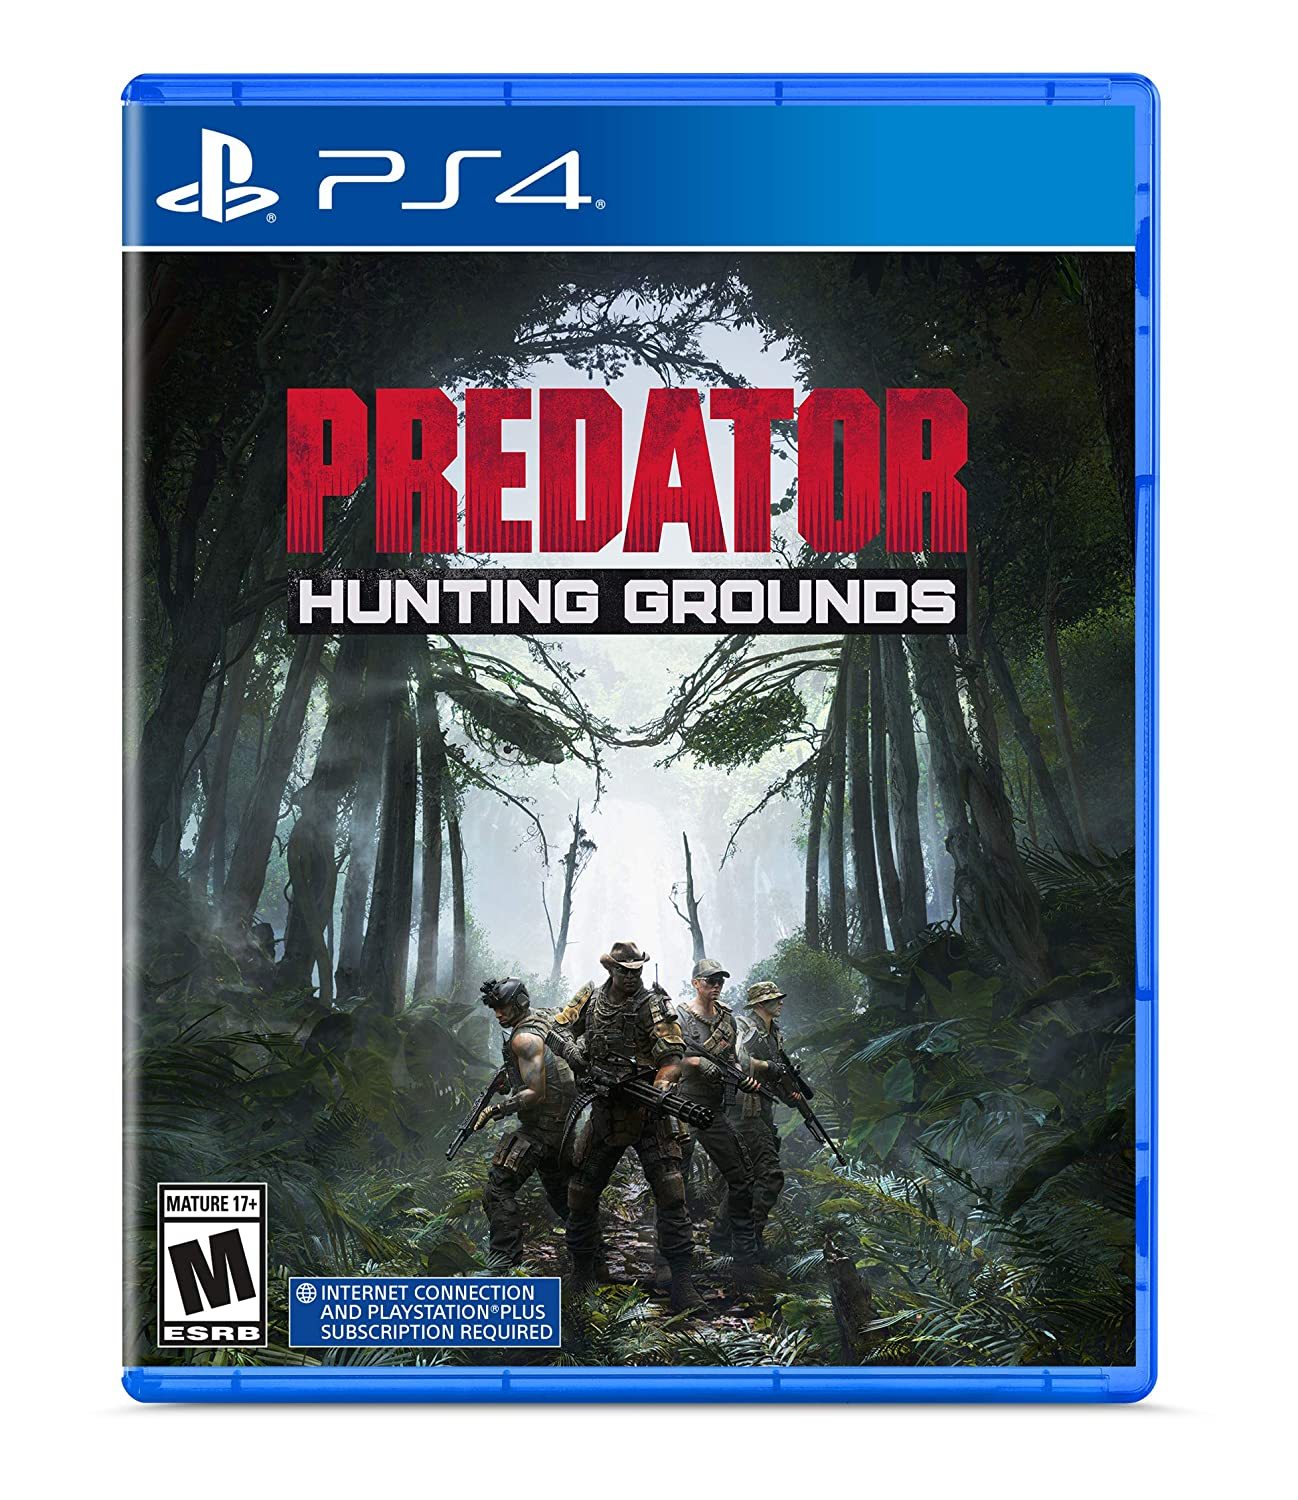 Predator. Hunting Grounds for Playstation 4 [Usa]: Amazon.es: Cine y Series TV